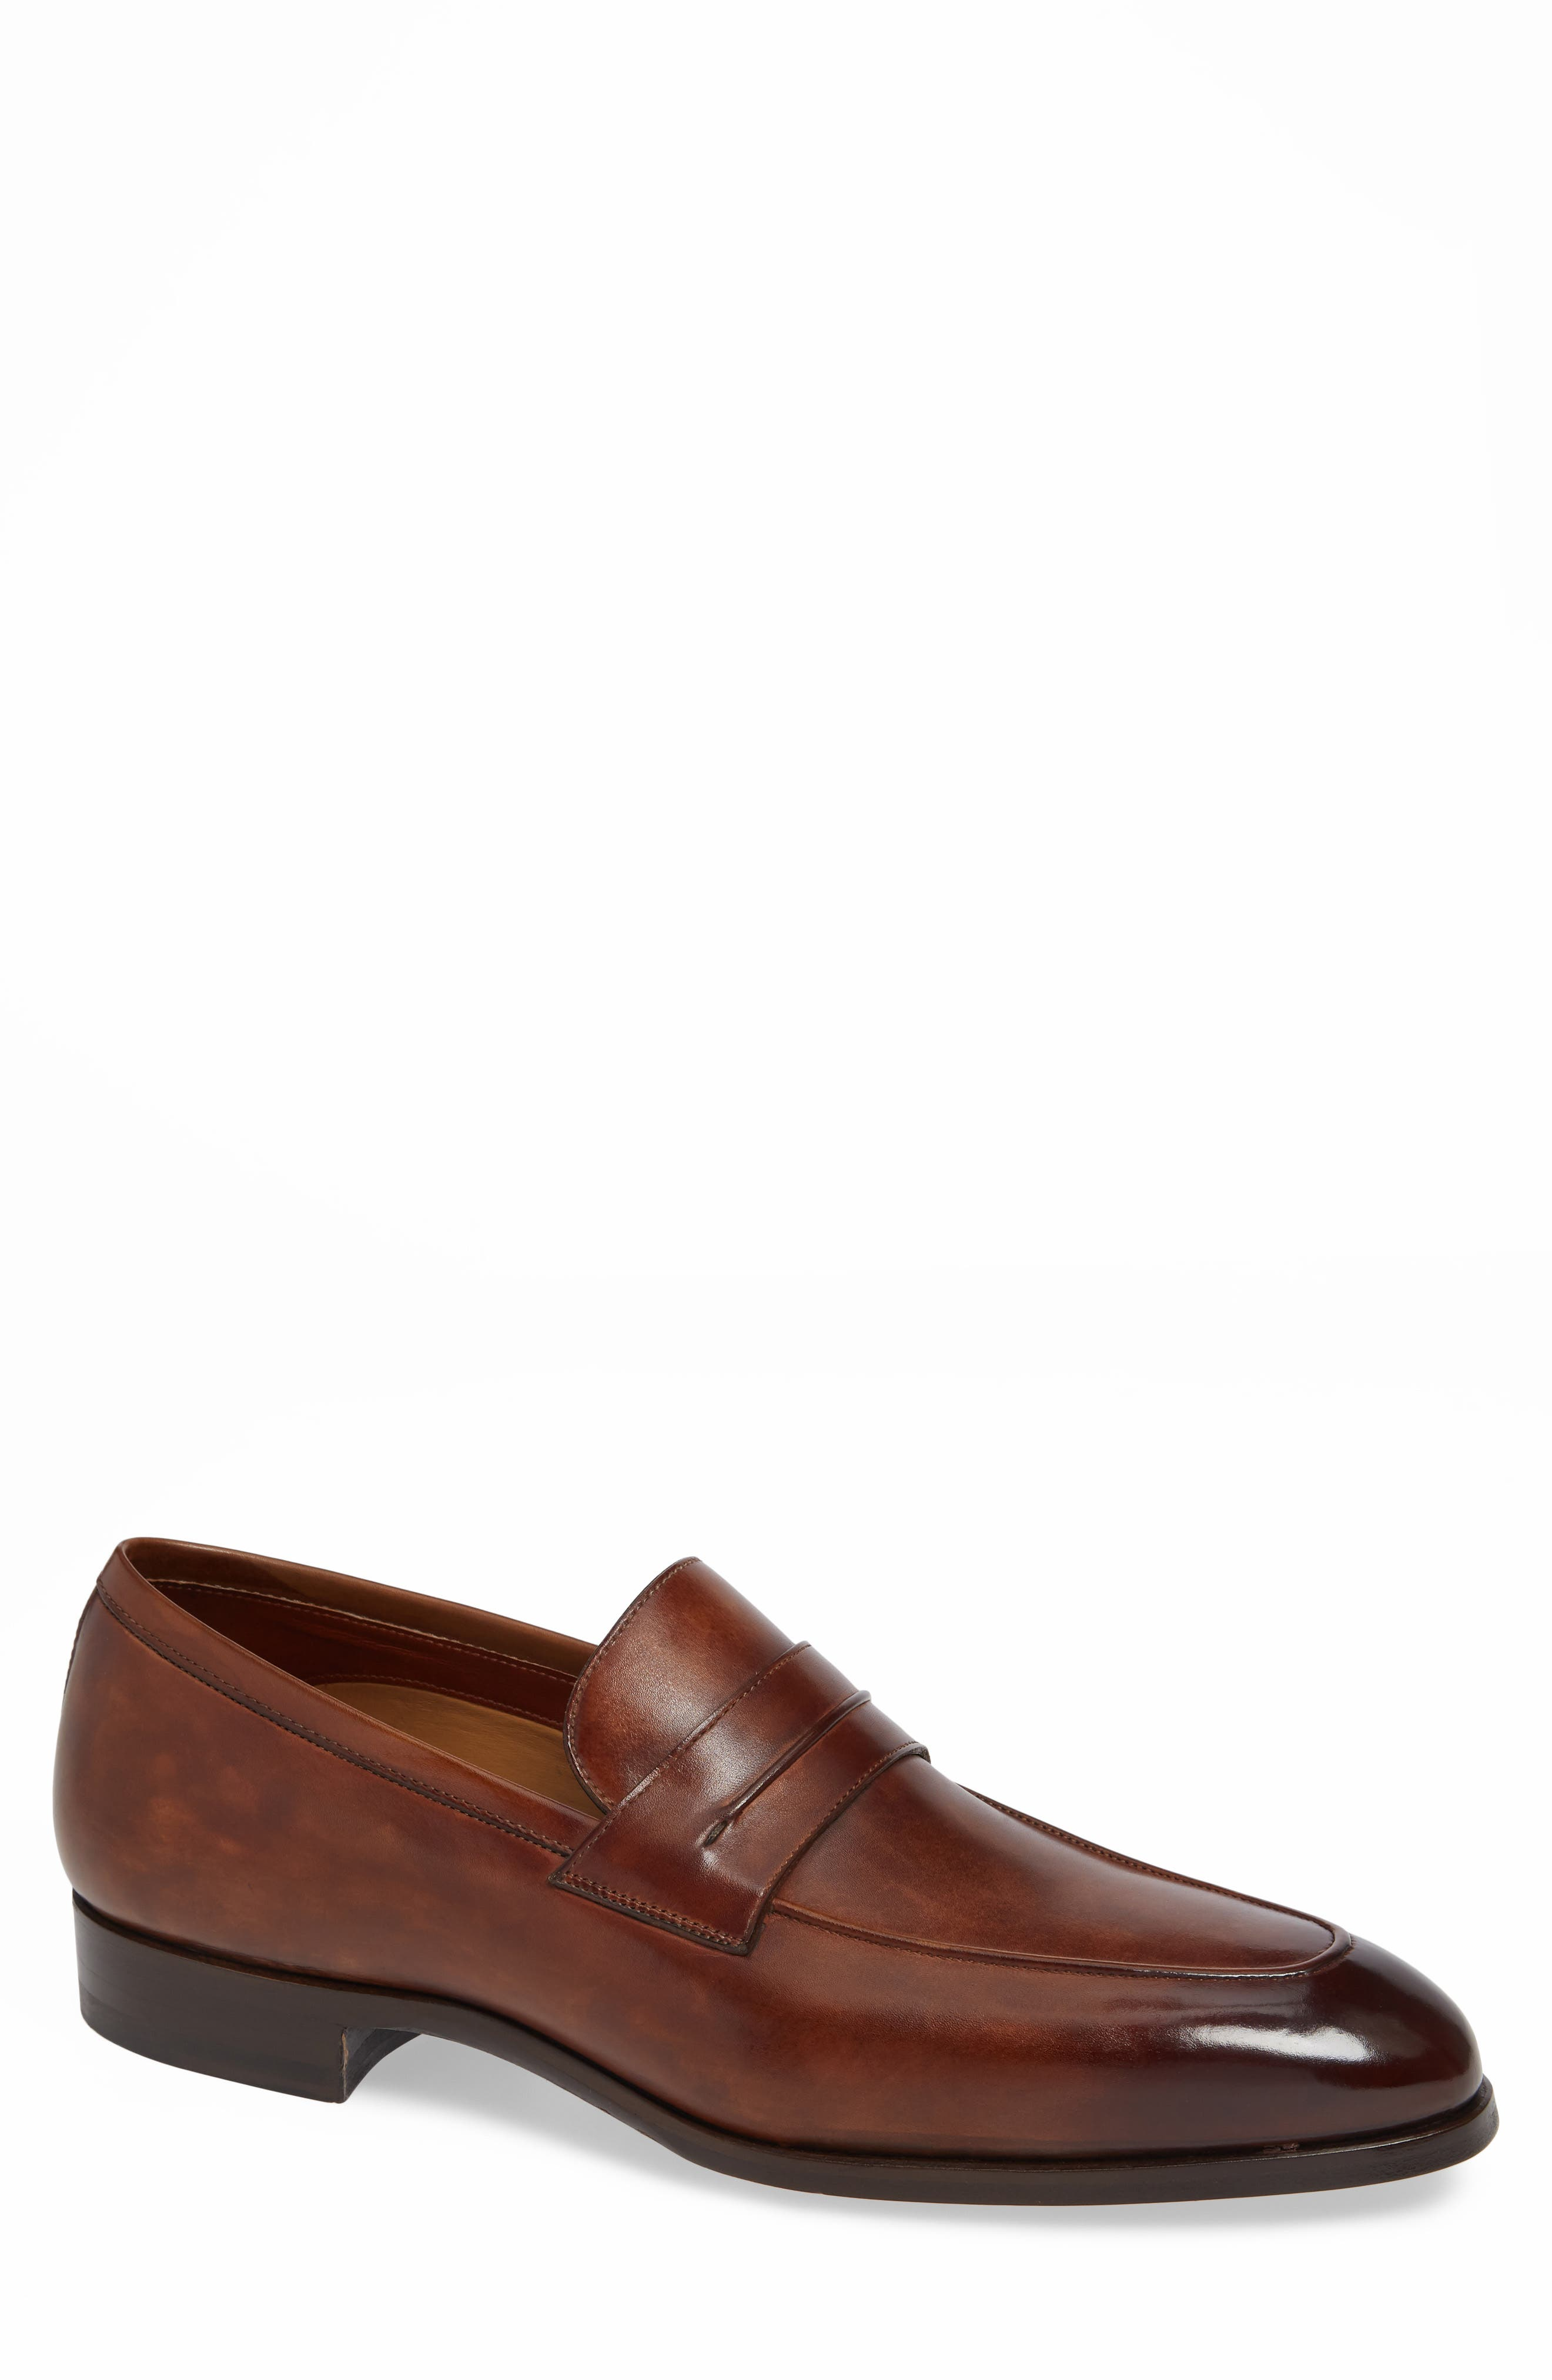 Sullivan Penny Loafer,                             Main thumbnail 1, color,                             240